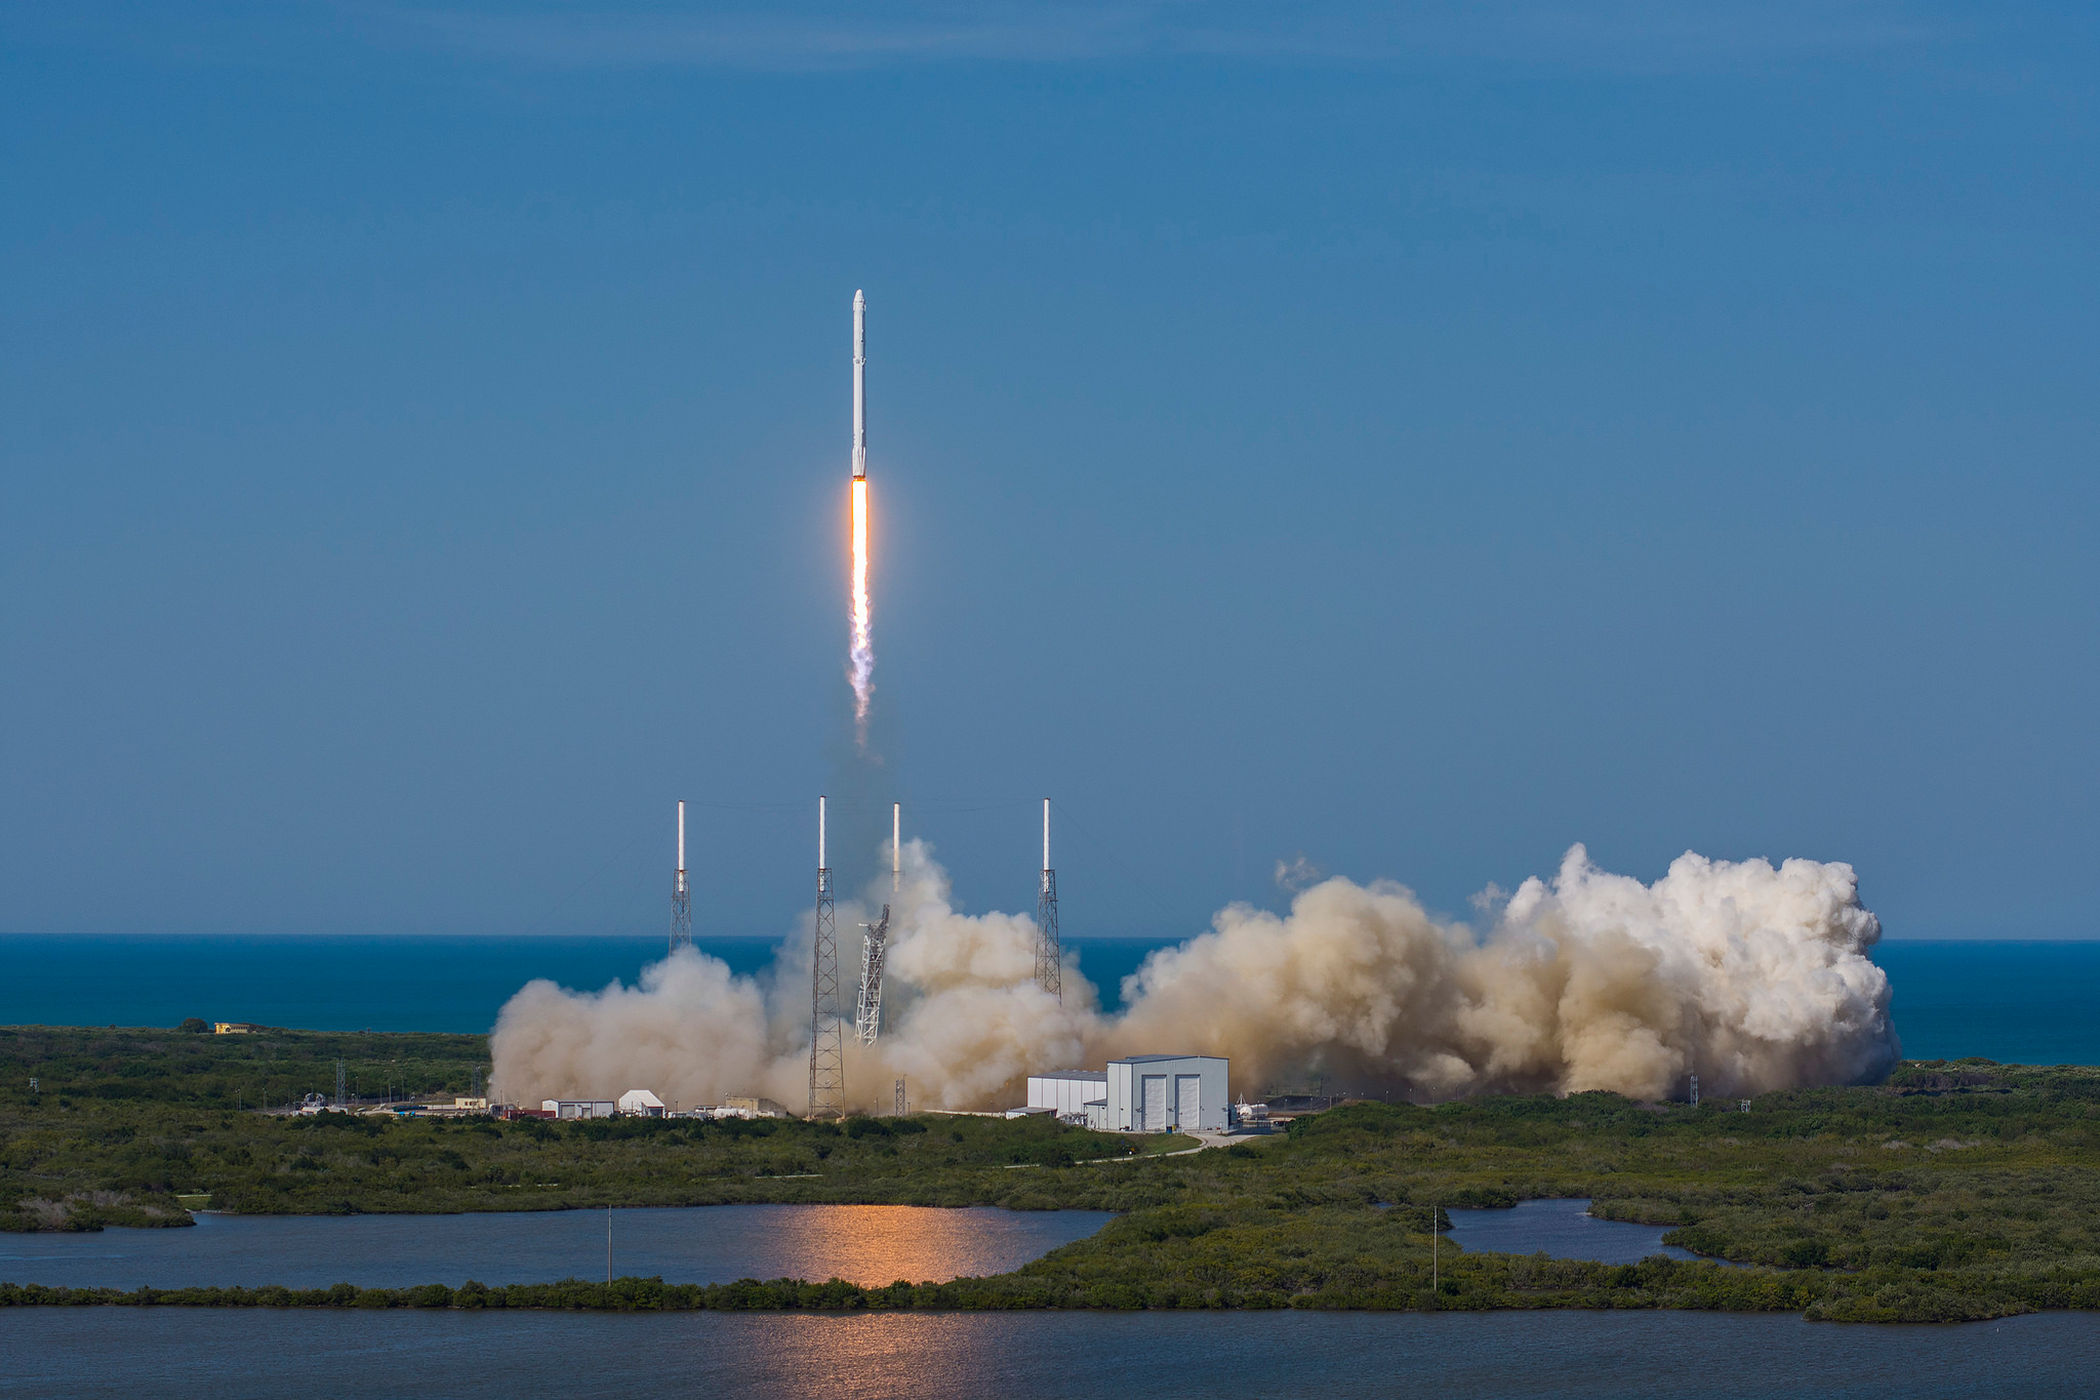 Space X - Falcon 9 FT - Dragon CRS-8 - ISS - Avril 2016 - Launch - lancement - première atterrisage réussi sur barge - first stage landing